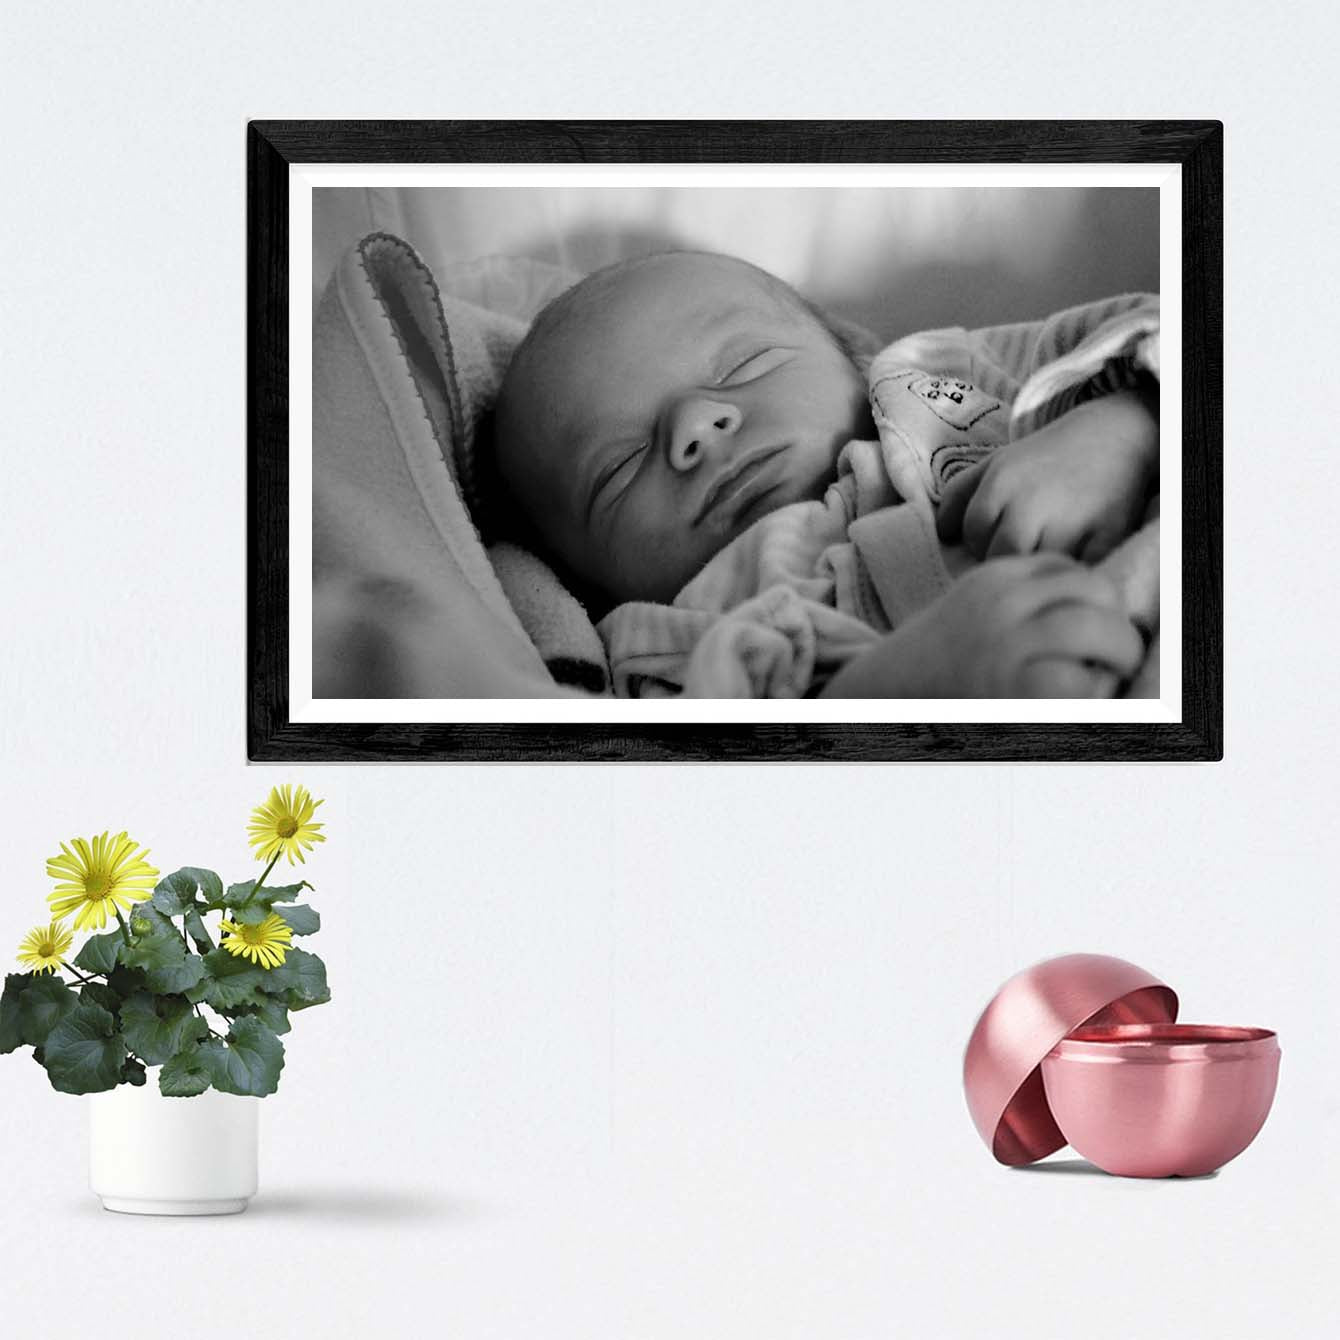 Baby Boy Baby Framed Photography